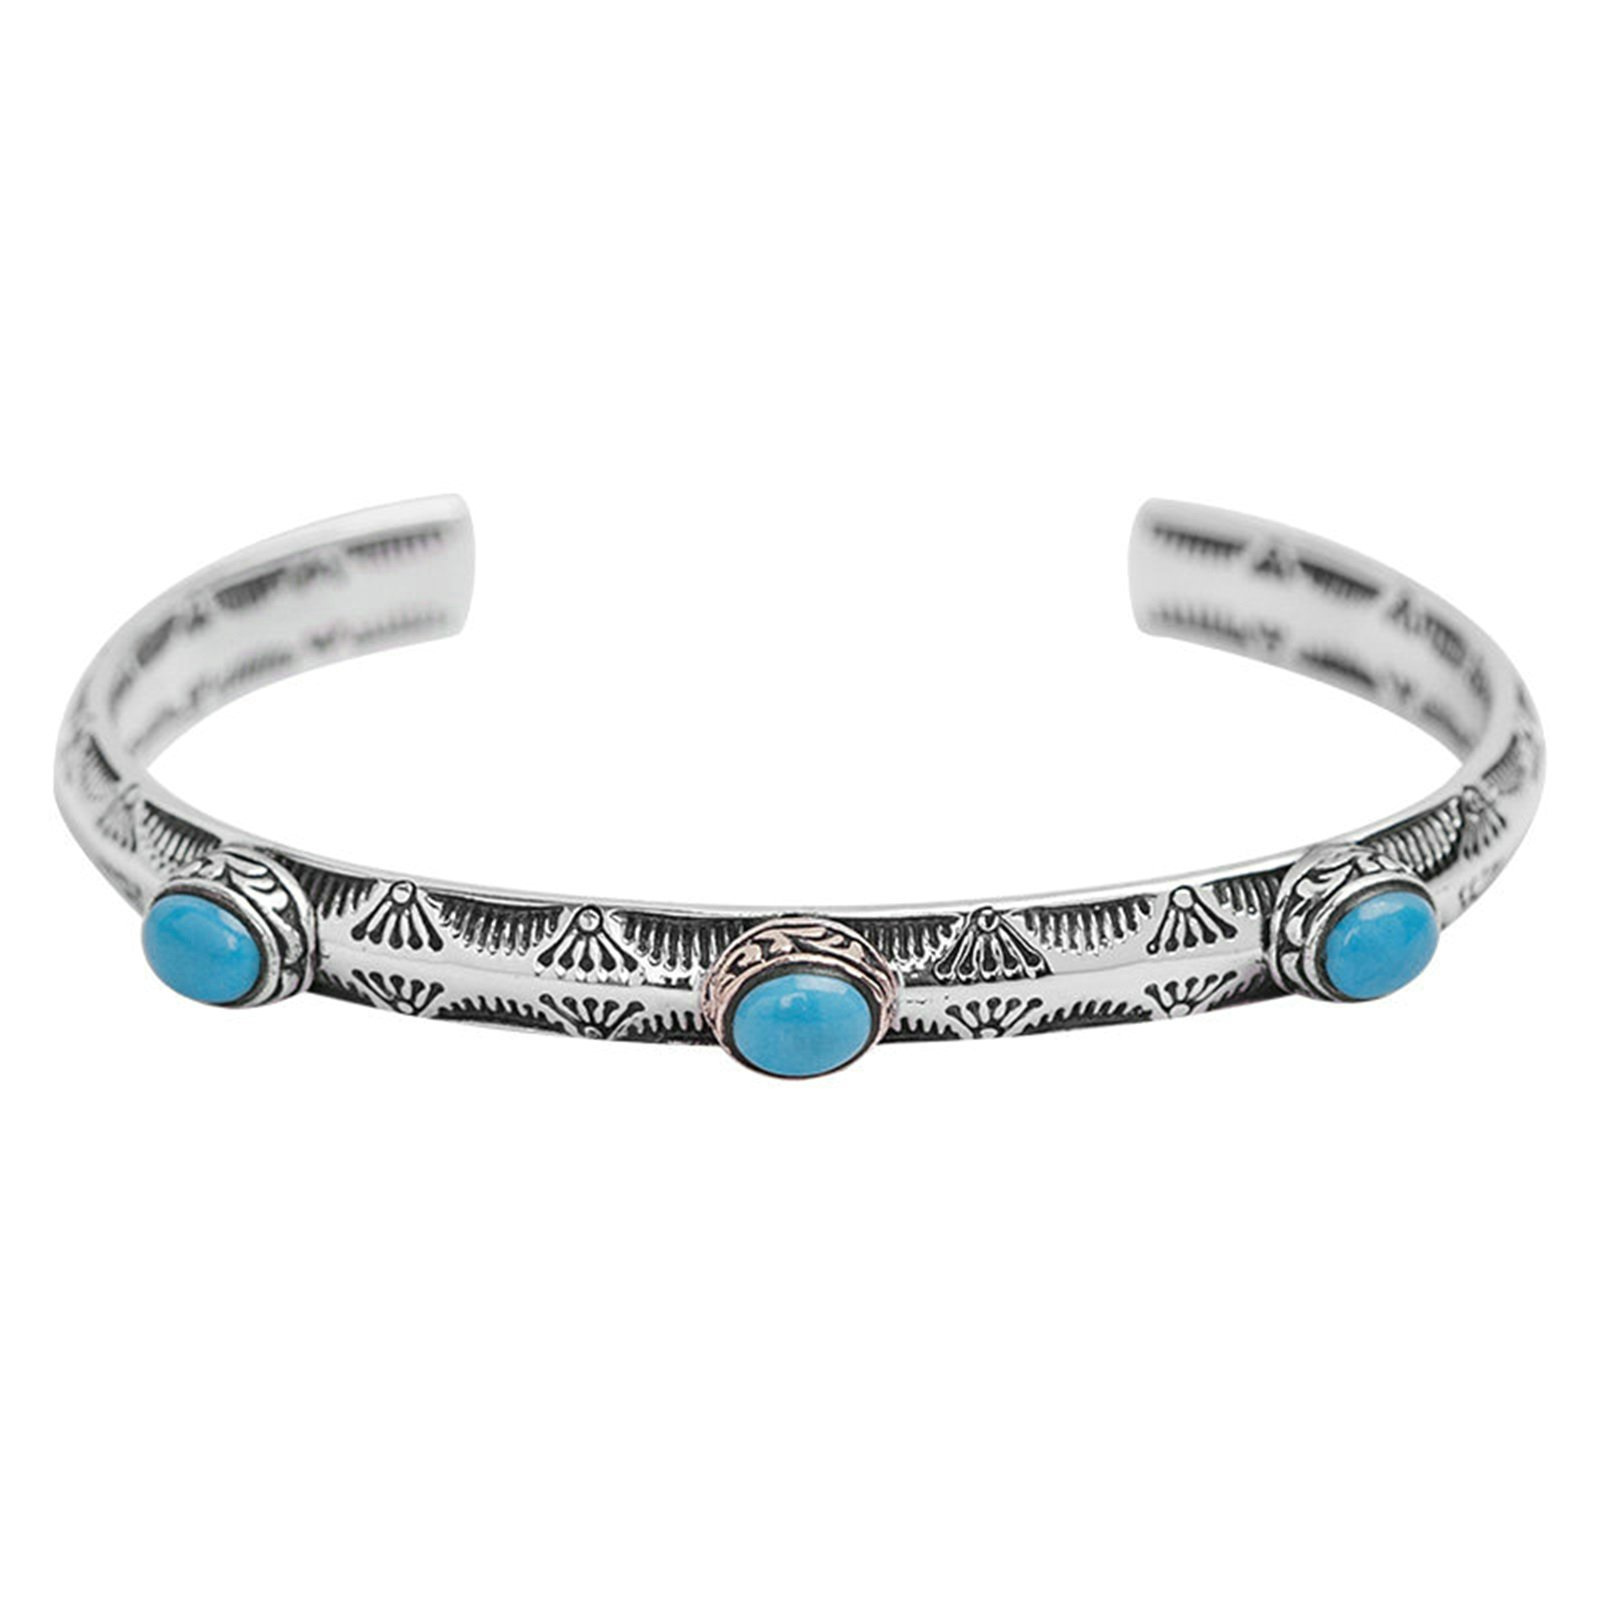 Daesar 925 Silver Bracelet For Women And Men Turquoise Unisex Bracelet Silver